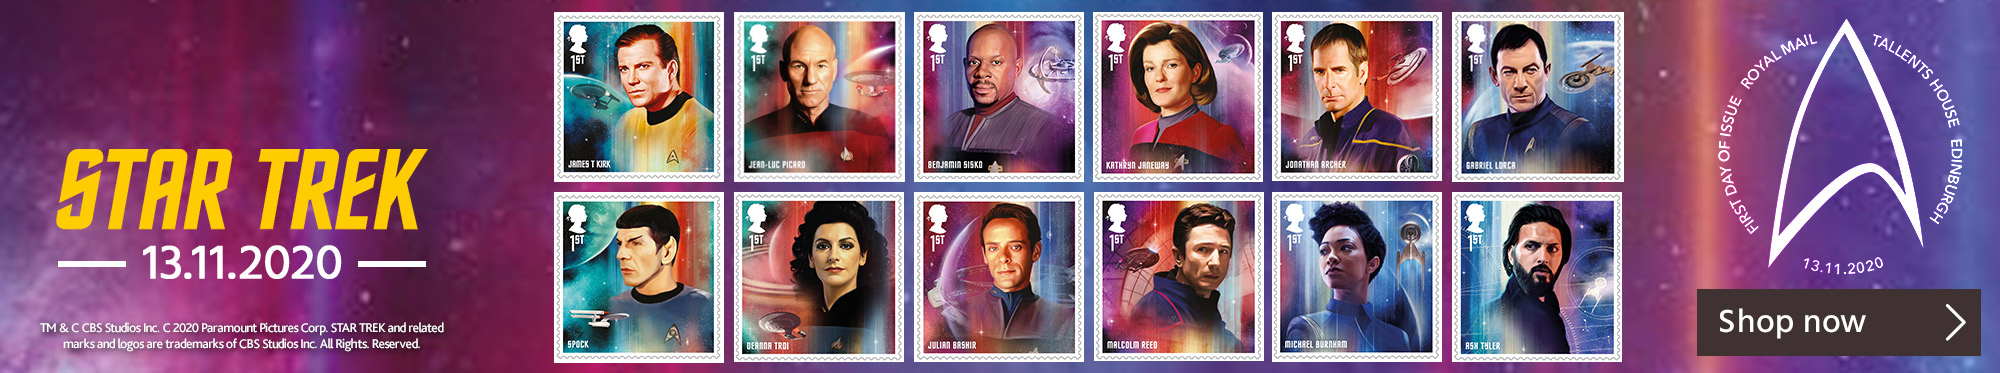 Star Trek Stamps and Collectibles Available Here